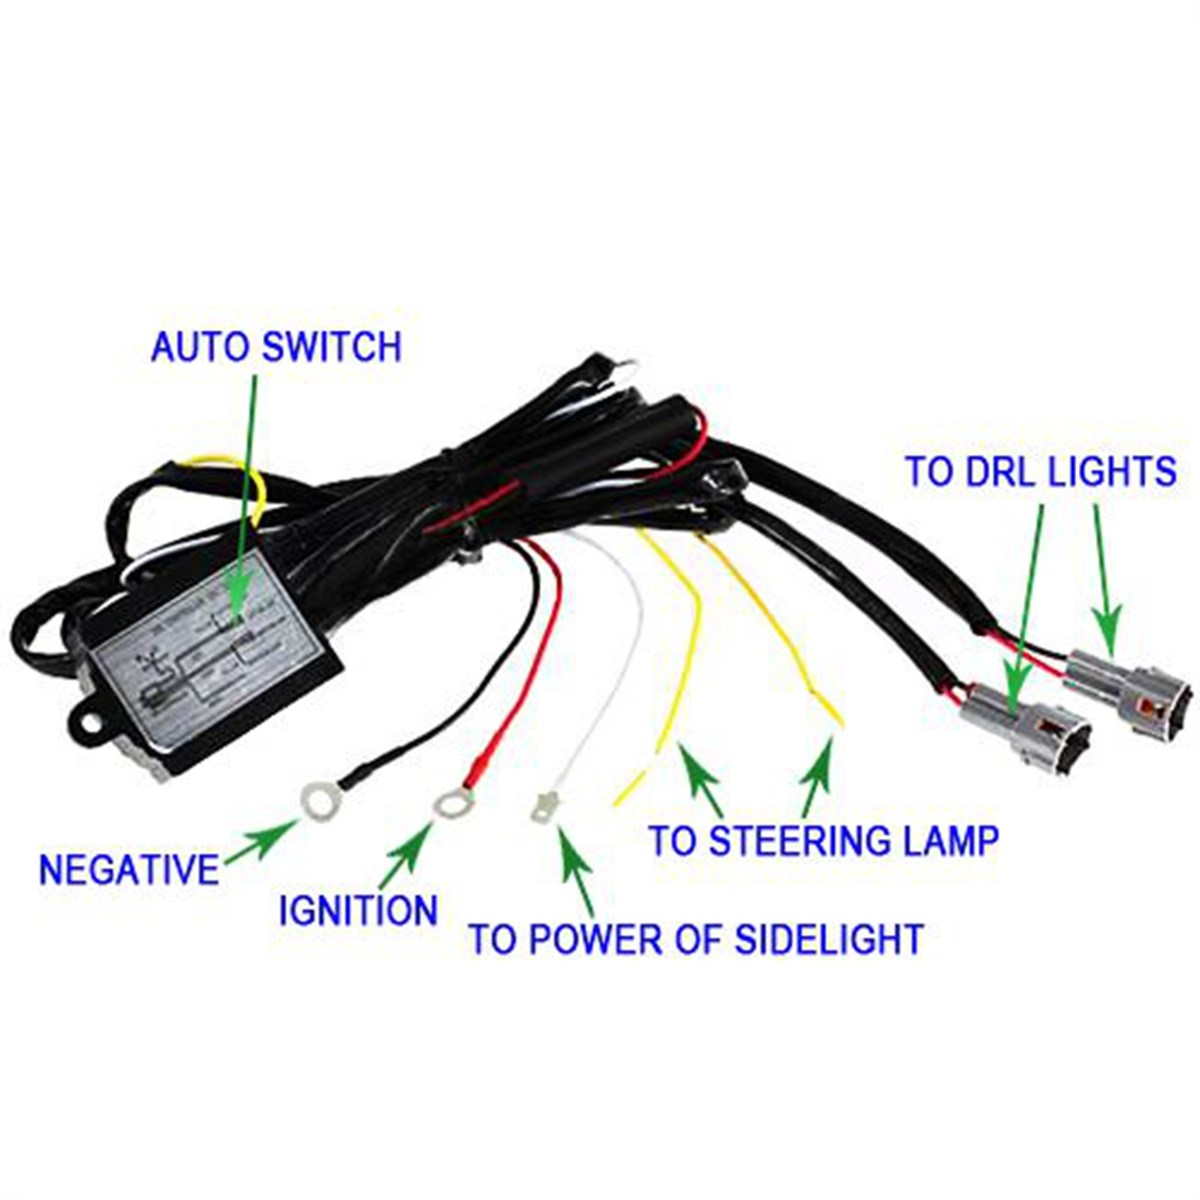 Daytime Running Lights Wiring Harness Not Lossing Diagram Hella Relay For Led Library Rh 87 Fulldiabetescare Org Install Kit